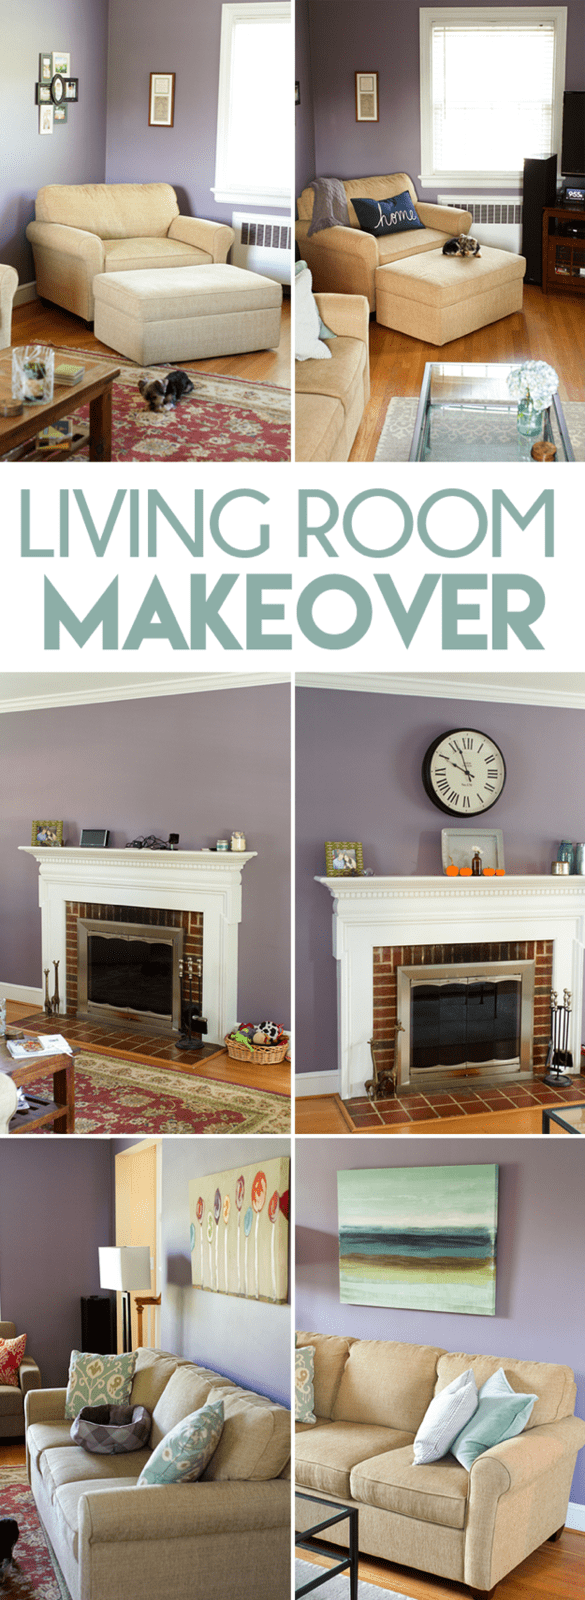 Living Room Makeover Before and Afters